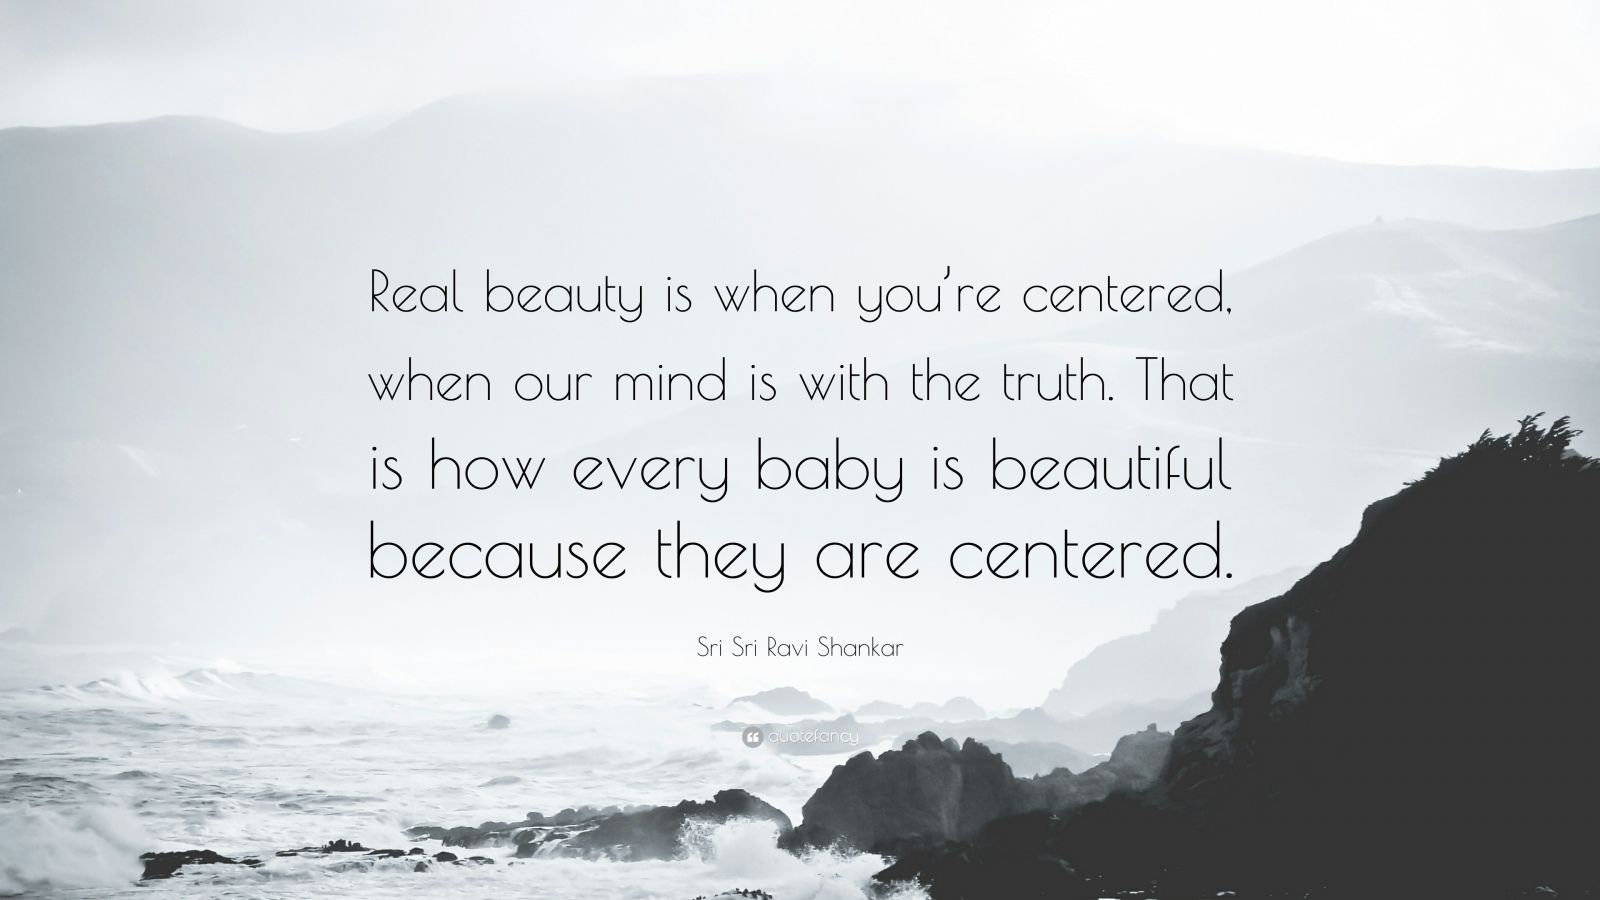 """Sri Sri Ravi Shankar Quote: """"Real beauty is when you're centered, when our mind is with the truth. That is how every baby is beautiful because they are centered."""""""